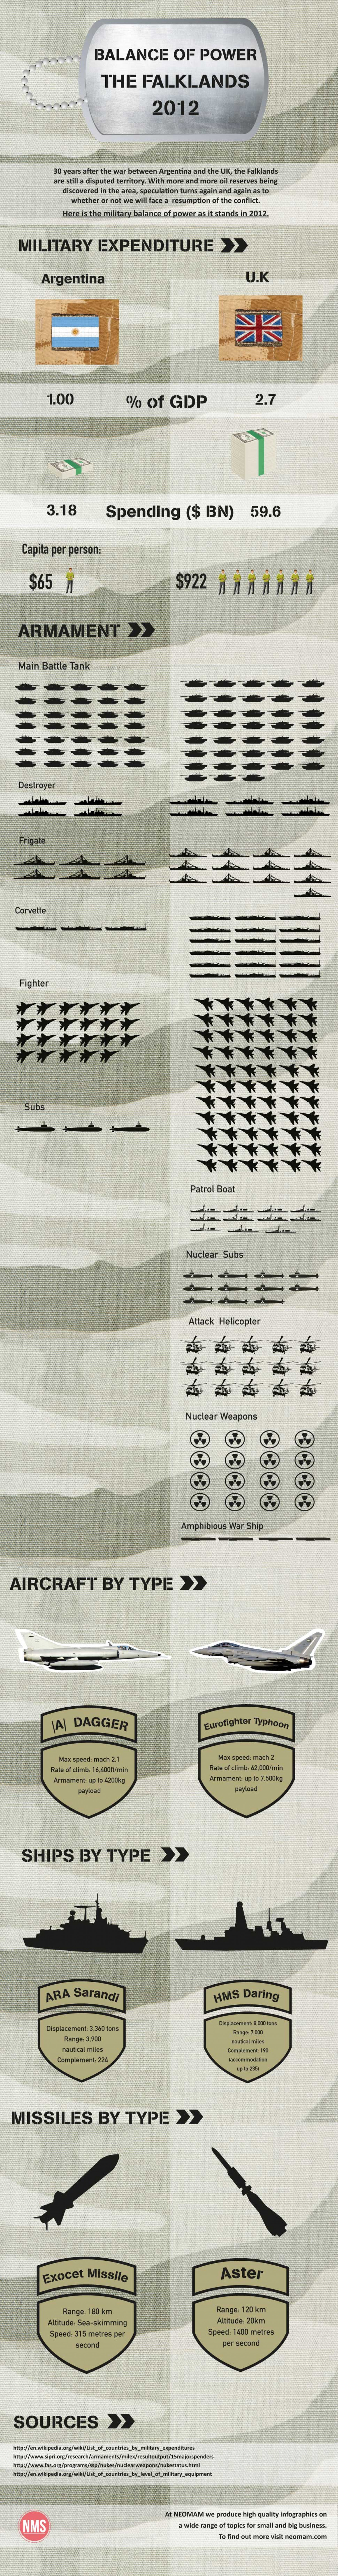 The Balance of Power: Faulklands 2012 Infographic